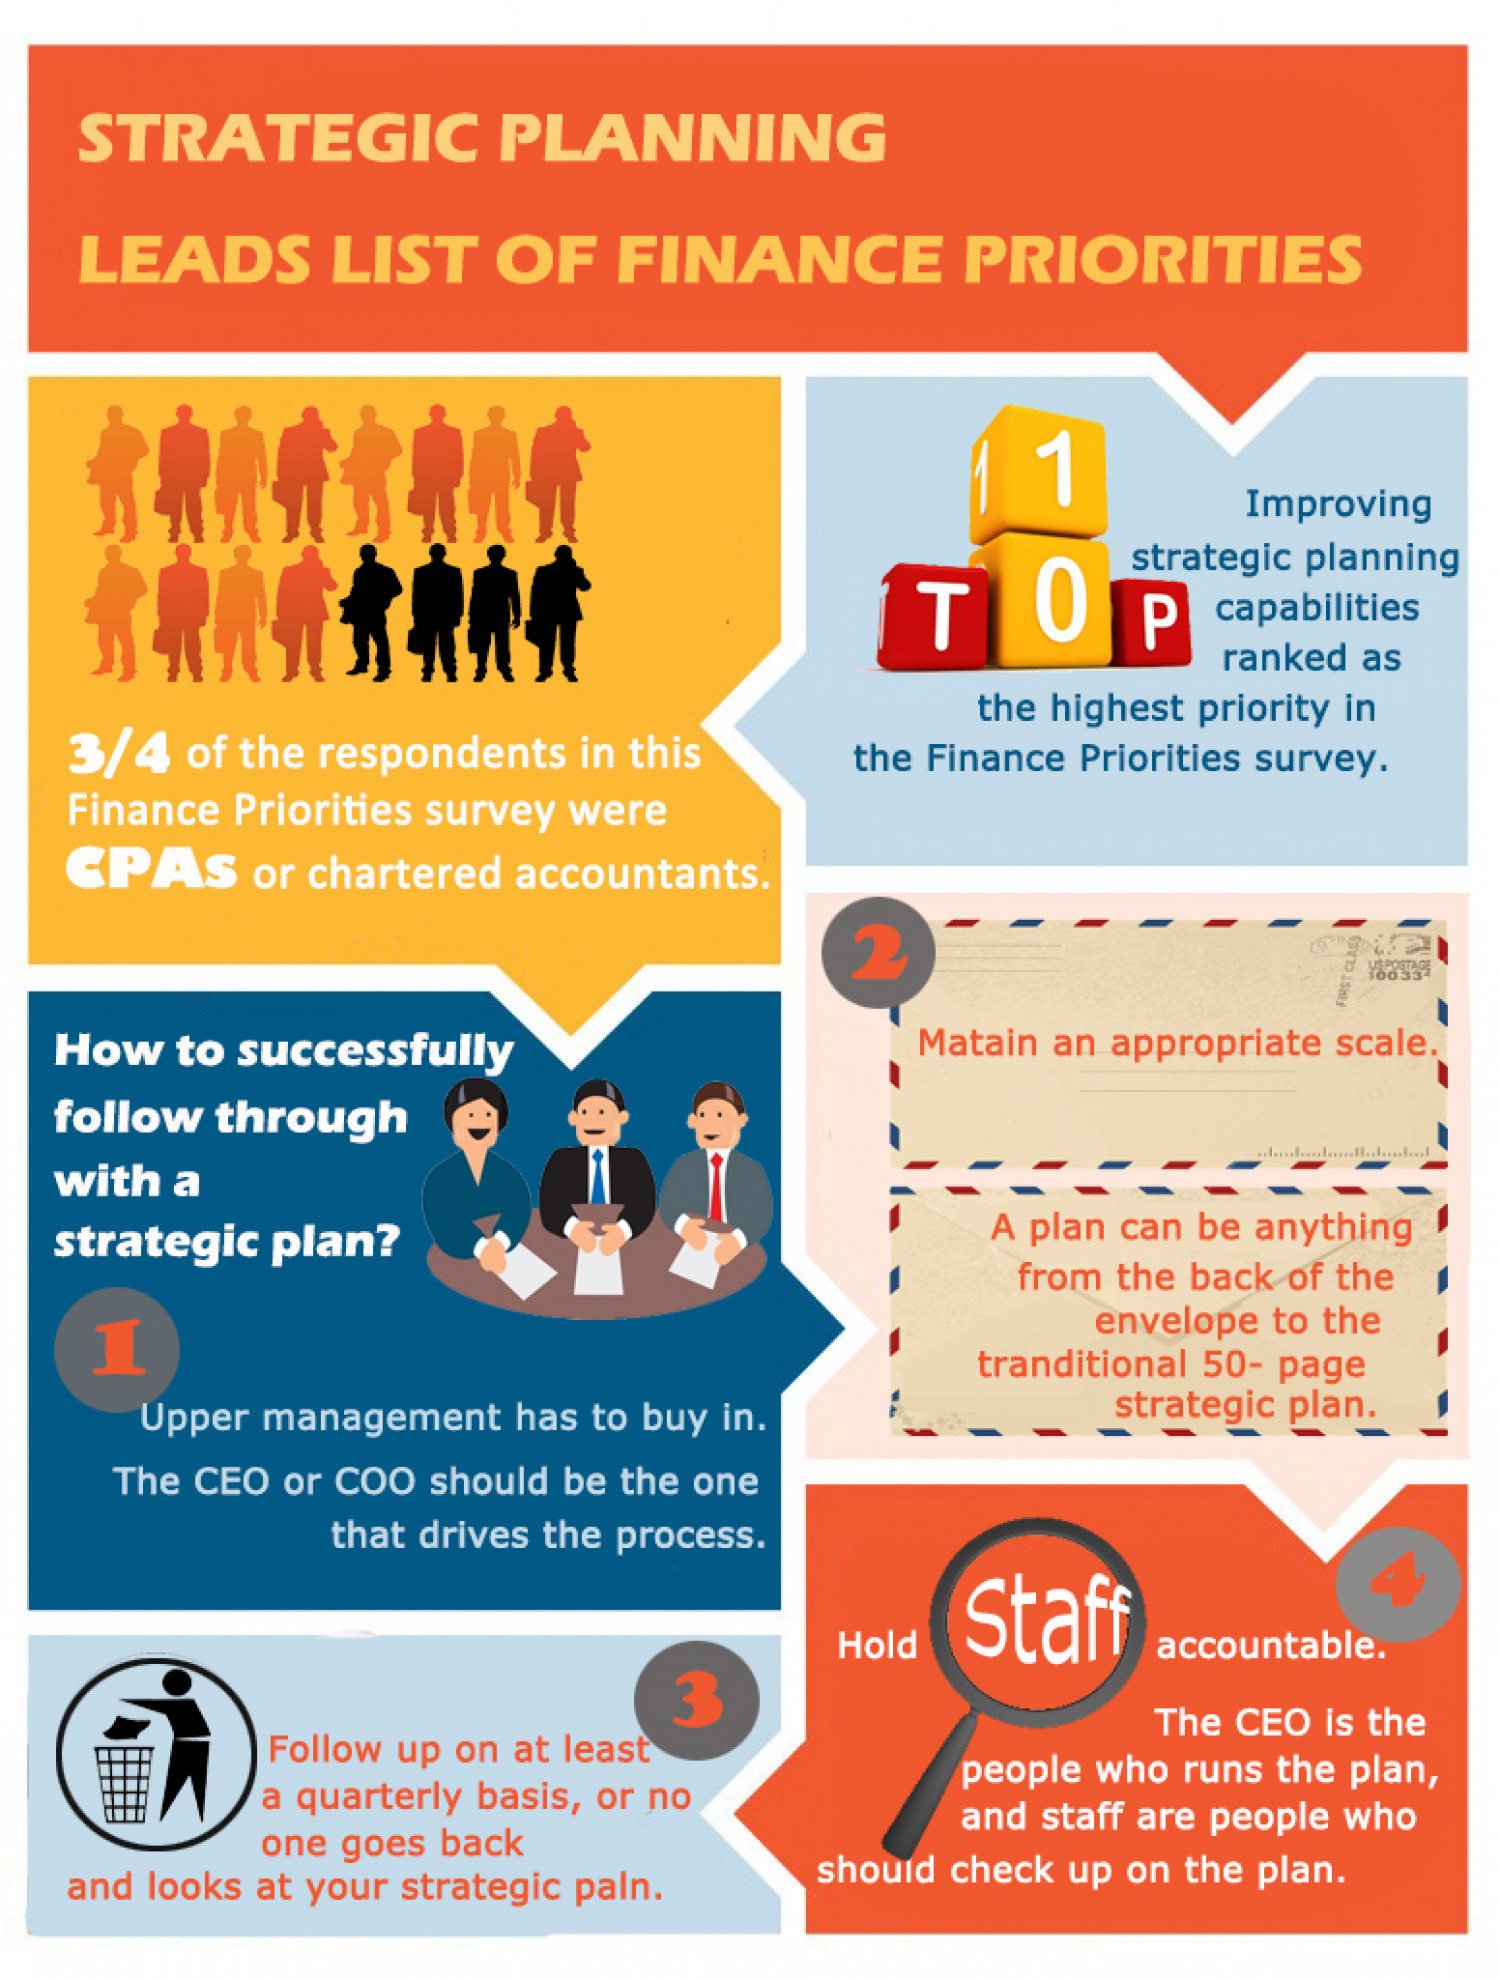 Strategic Planning Leads List Of Finance Priorities